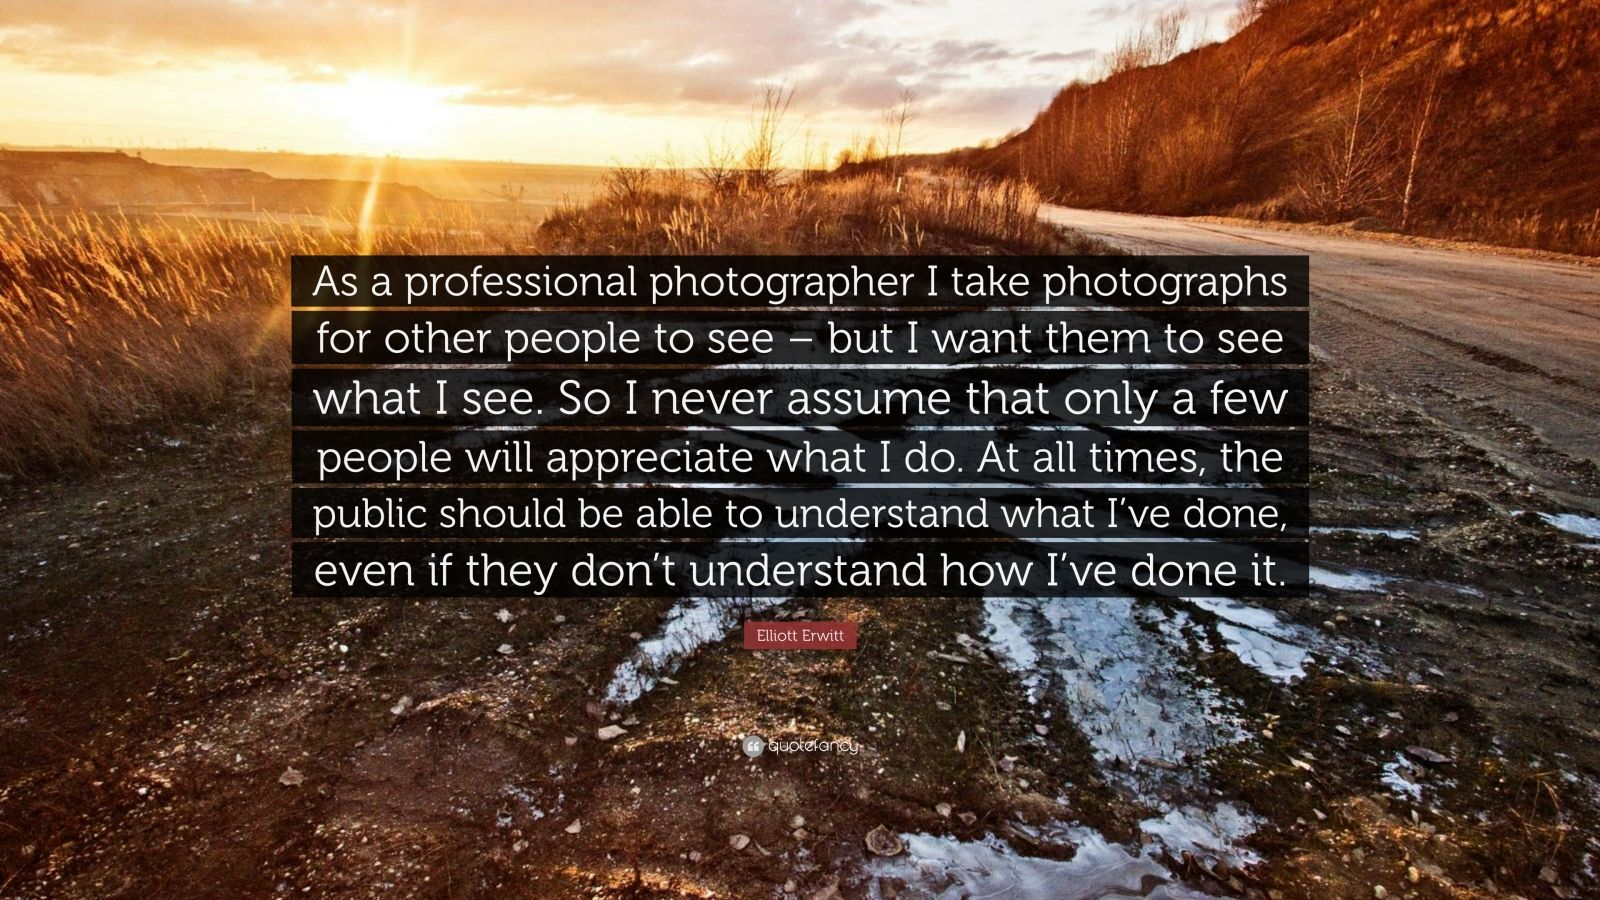 """Elliott Erwitt Quote: """"As a professional photographer I take photographs for other people to see – but I want them to see what I see. So I never assume that only a few people will appreciate what I do. At all times, the public should be able to understand what I've done, even if they don't understand how I've done it."""""""